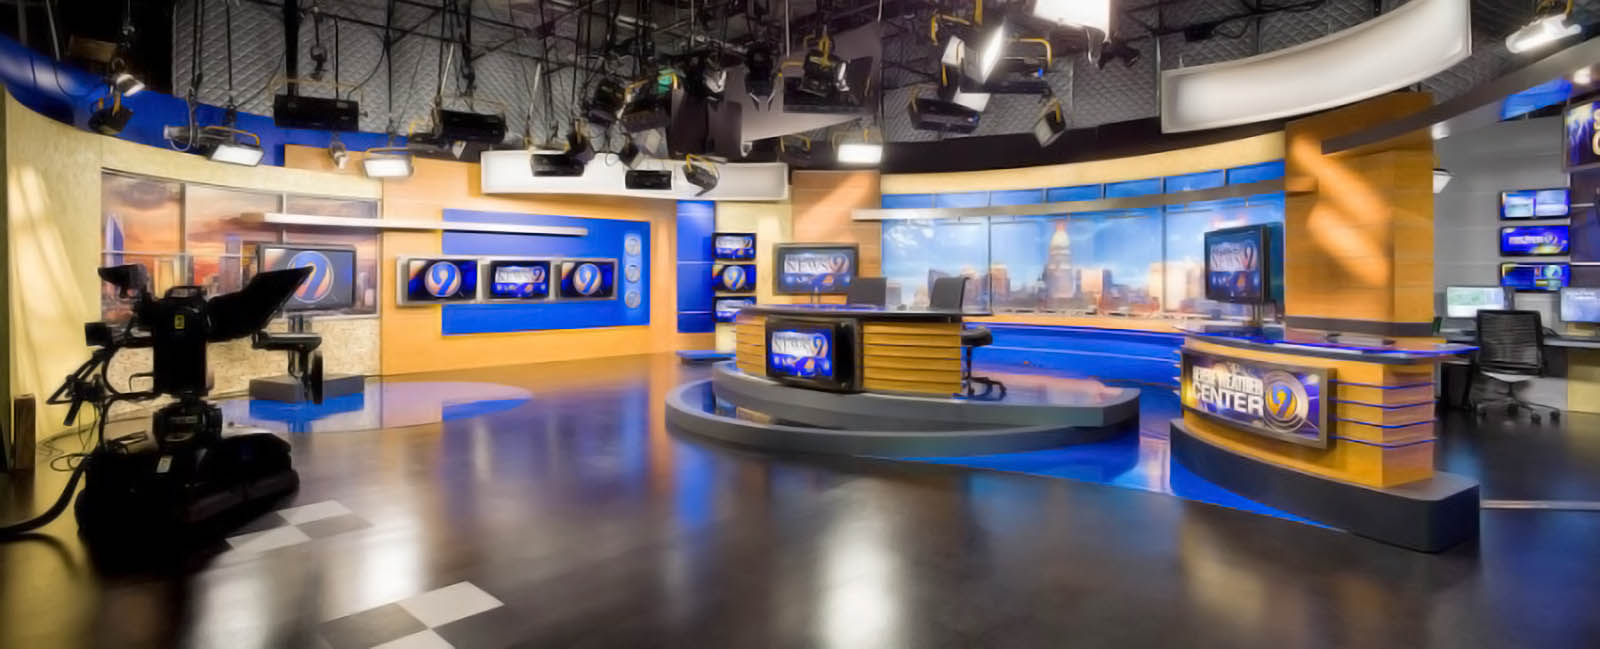 WSOC TV News studio